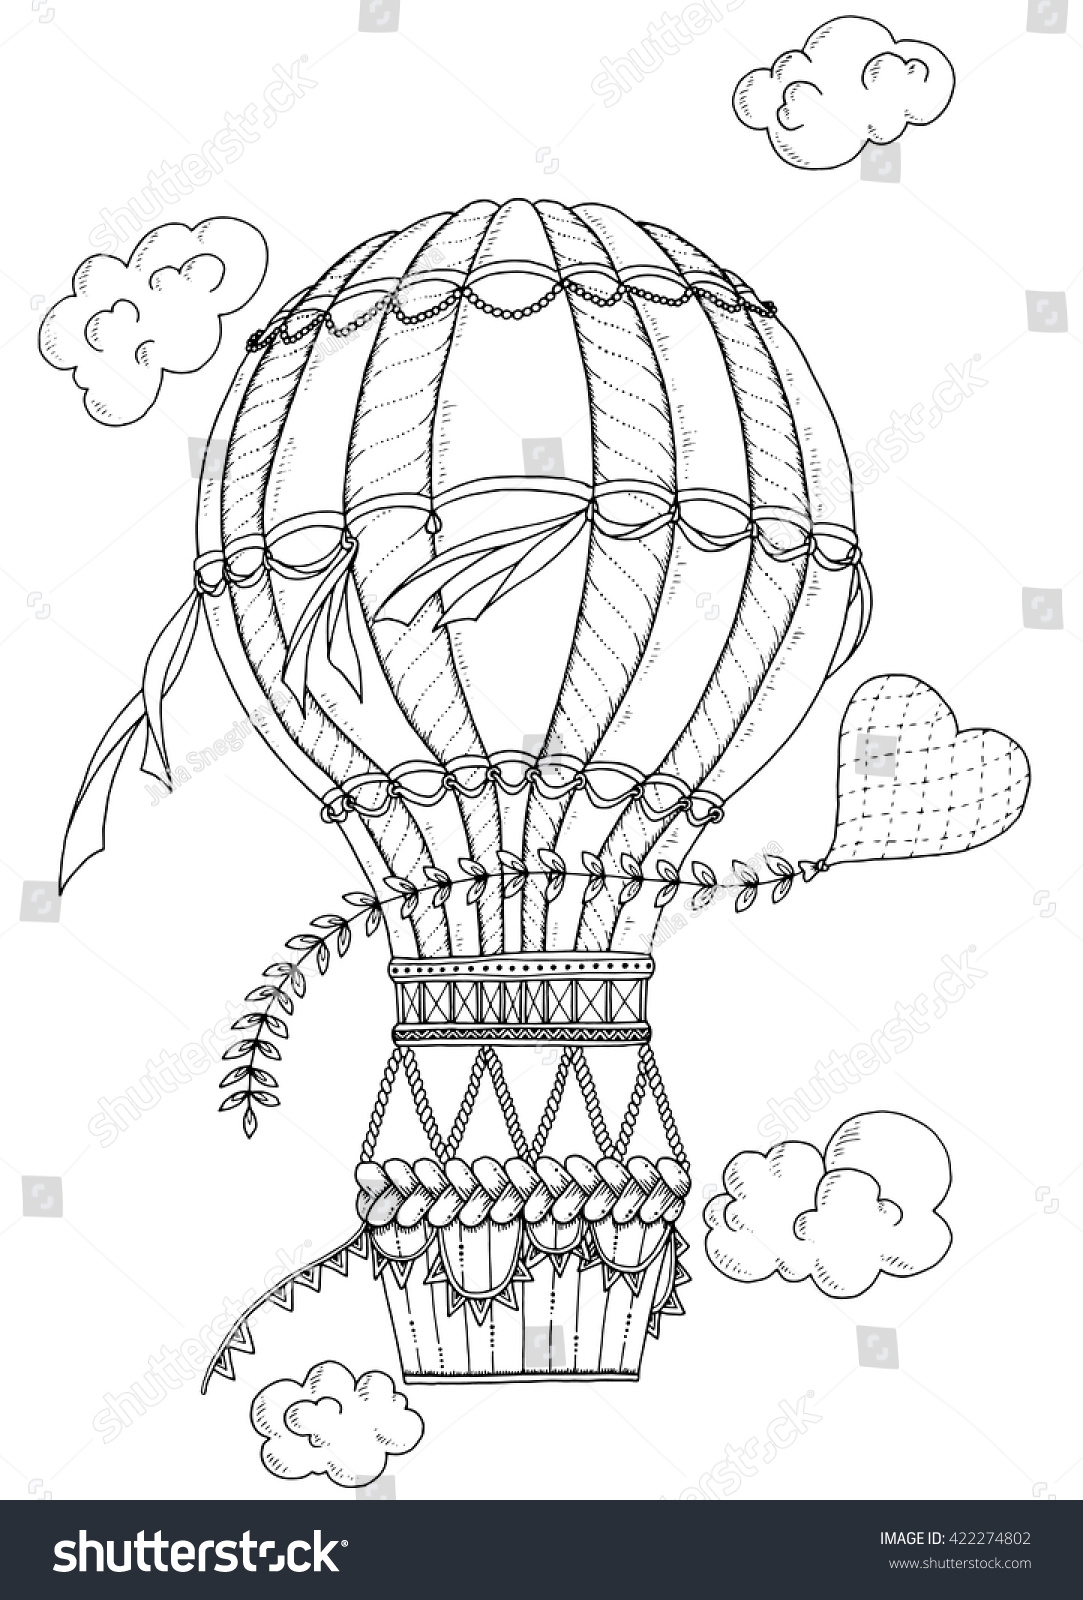 Summer theme black white air balloon stock vector for Summer themed coloring pages